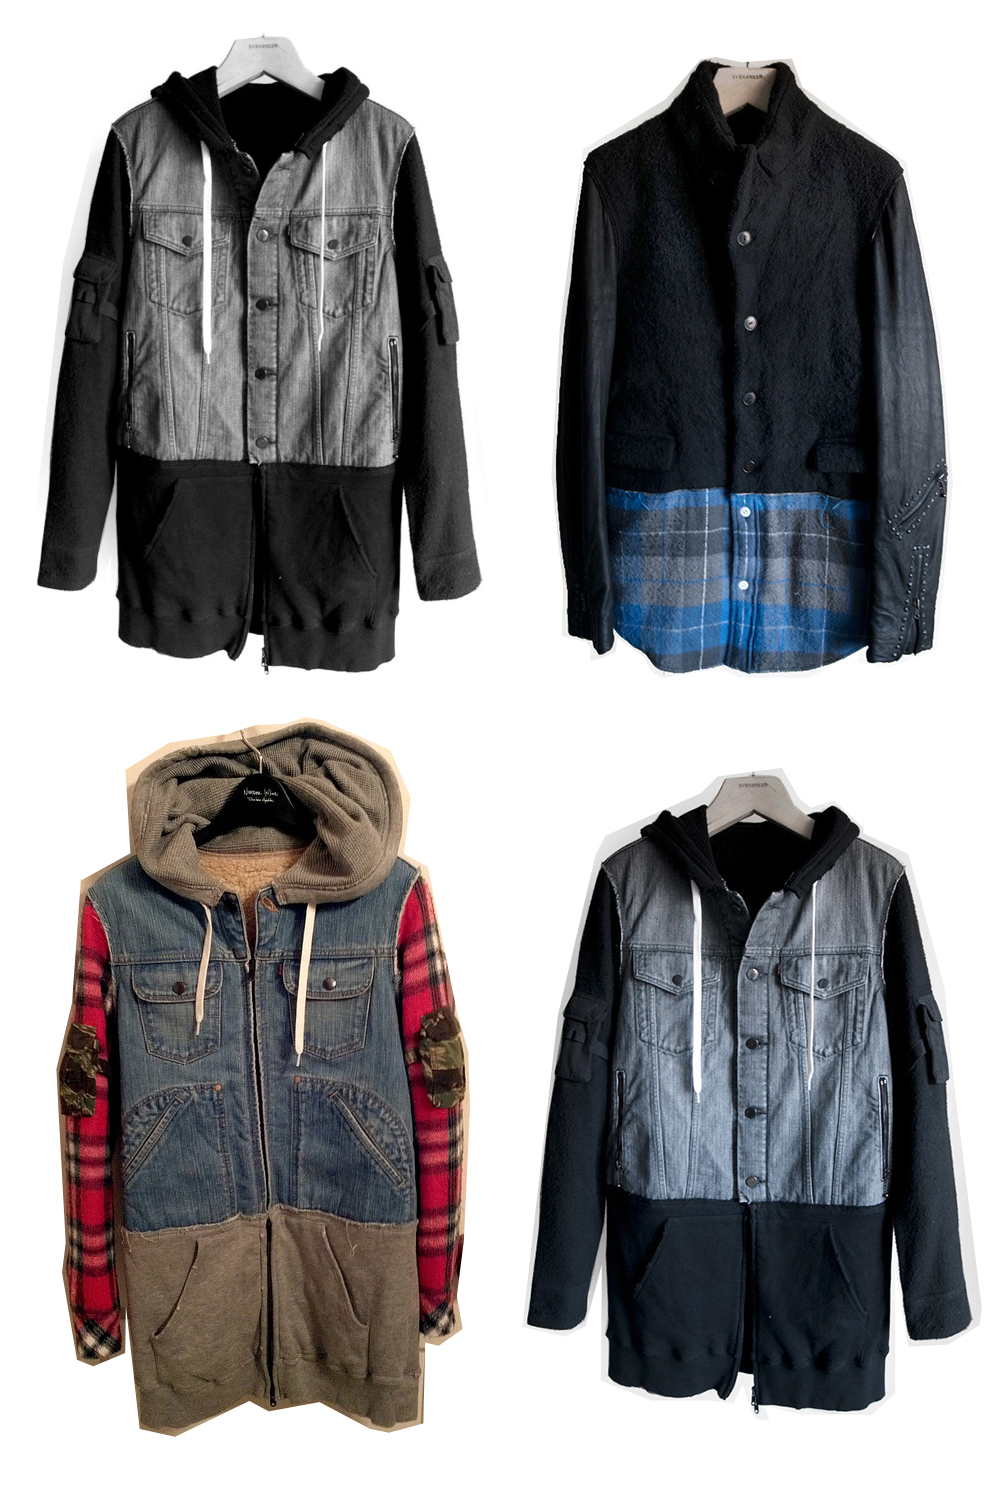 Tuukka13 - Inspiration - Number Nine Jackets - Mood Board - 1